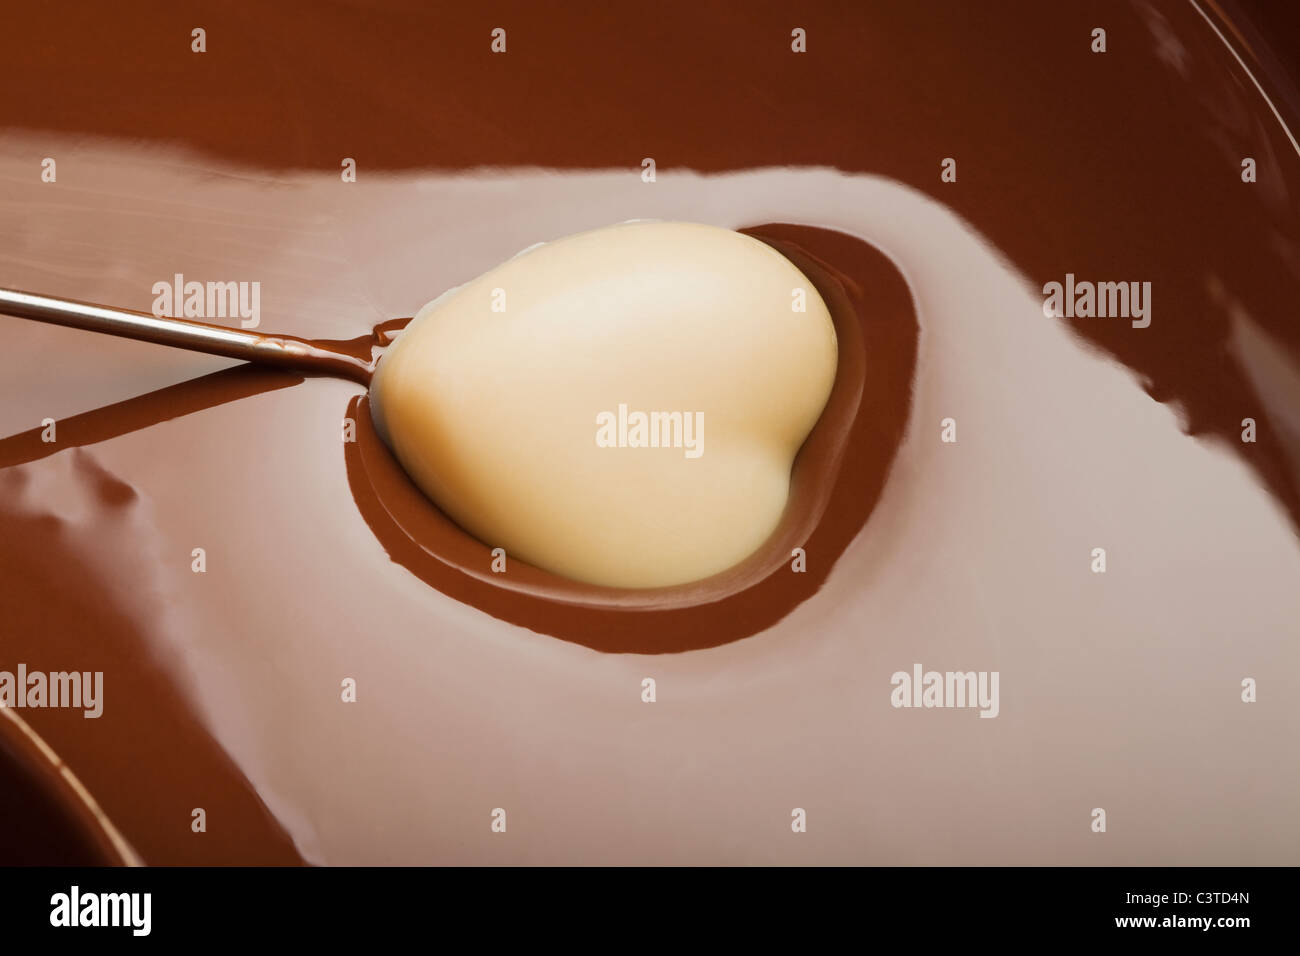 Heart-shaped candy being dipped in chocolate Stock Photo